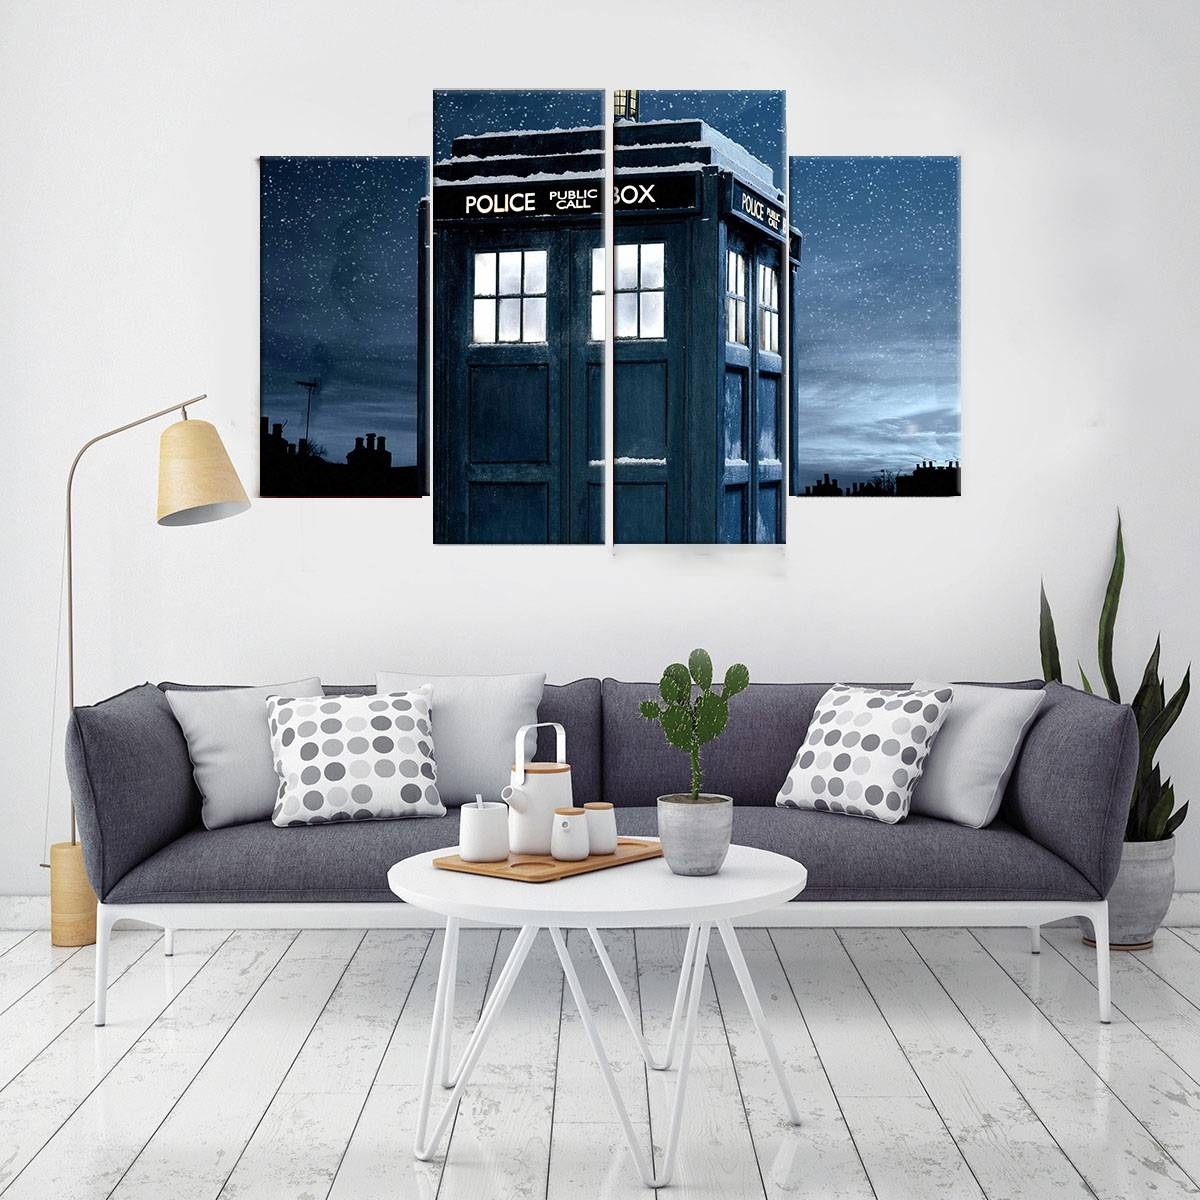 Doctor Who Wall Art – Album On Imgur Regarding Most Current Doctor Who Wall Art (View 25 of 33)